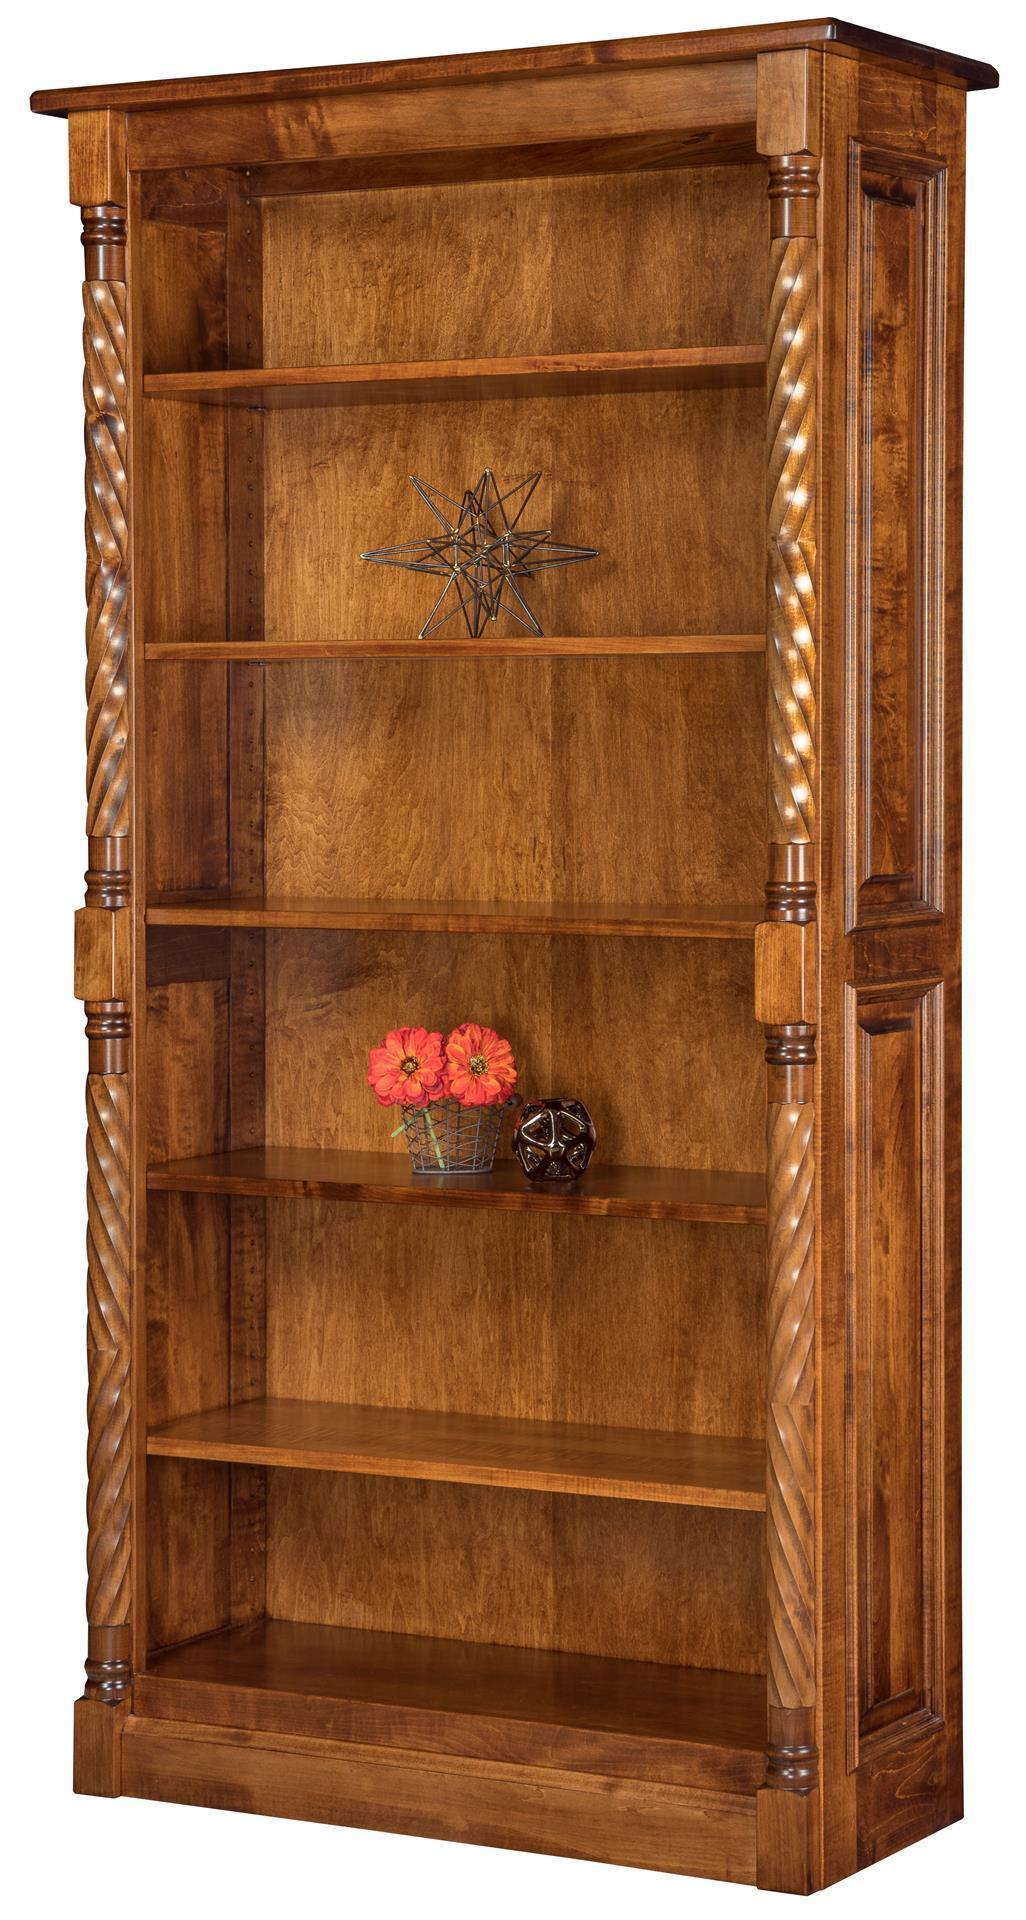 Kincaid Solid Wood Bookcase From Dutchcrafters Amish Furniture